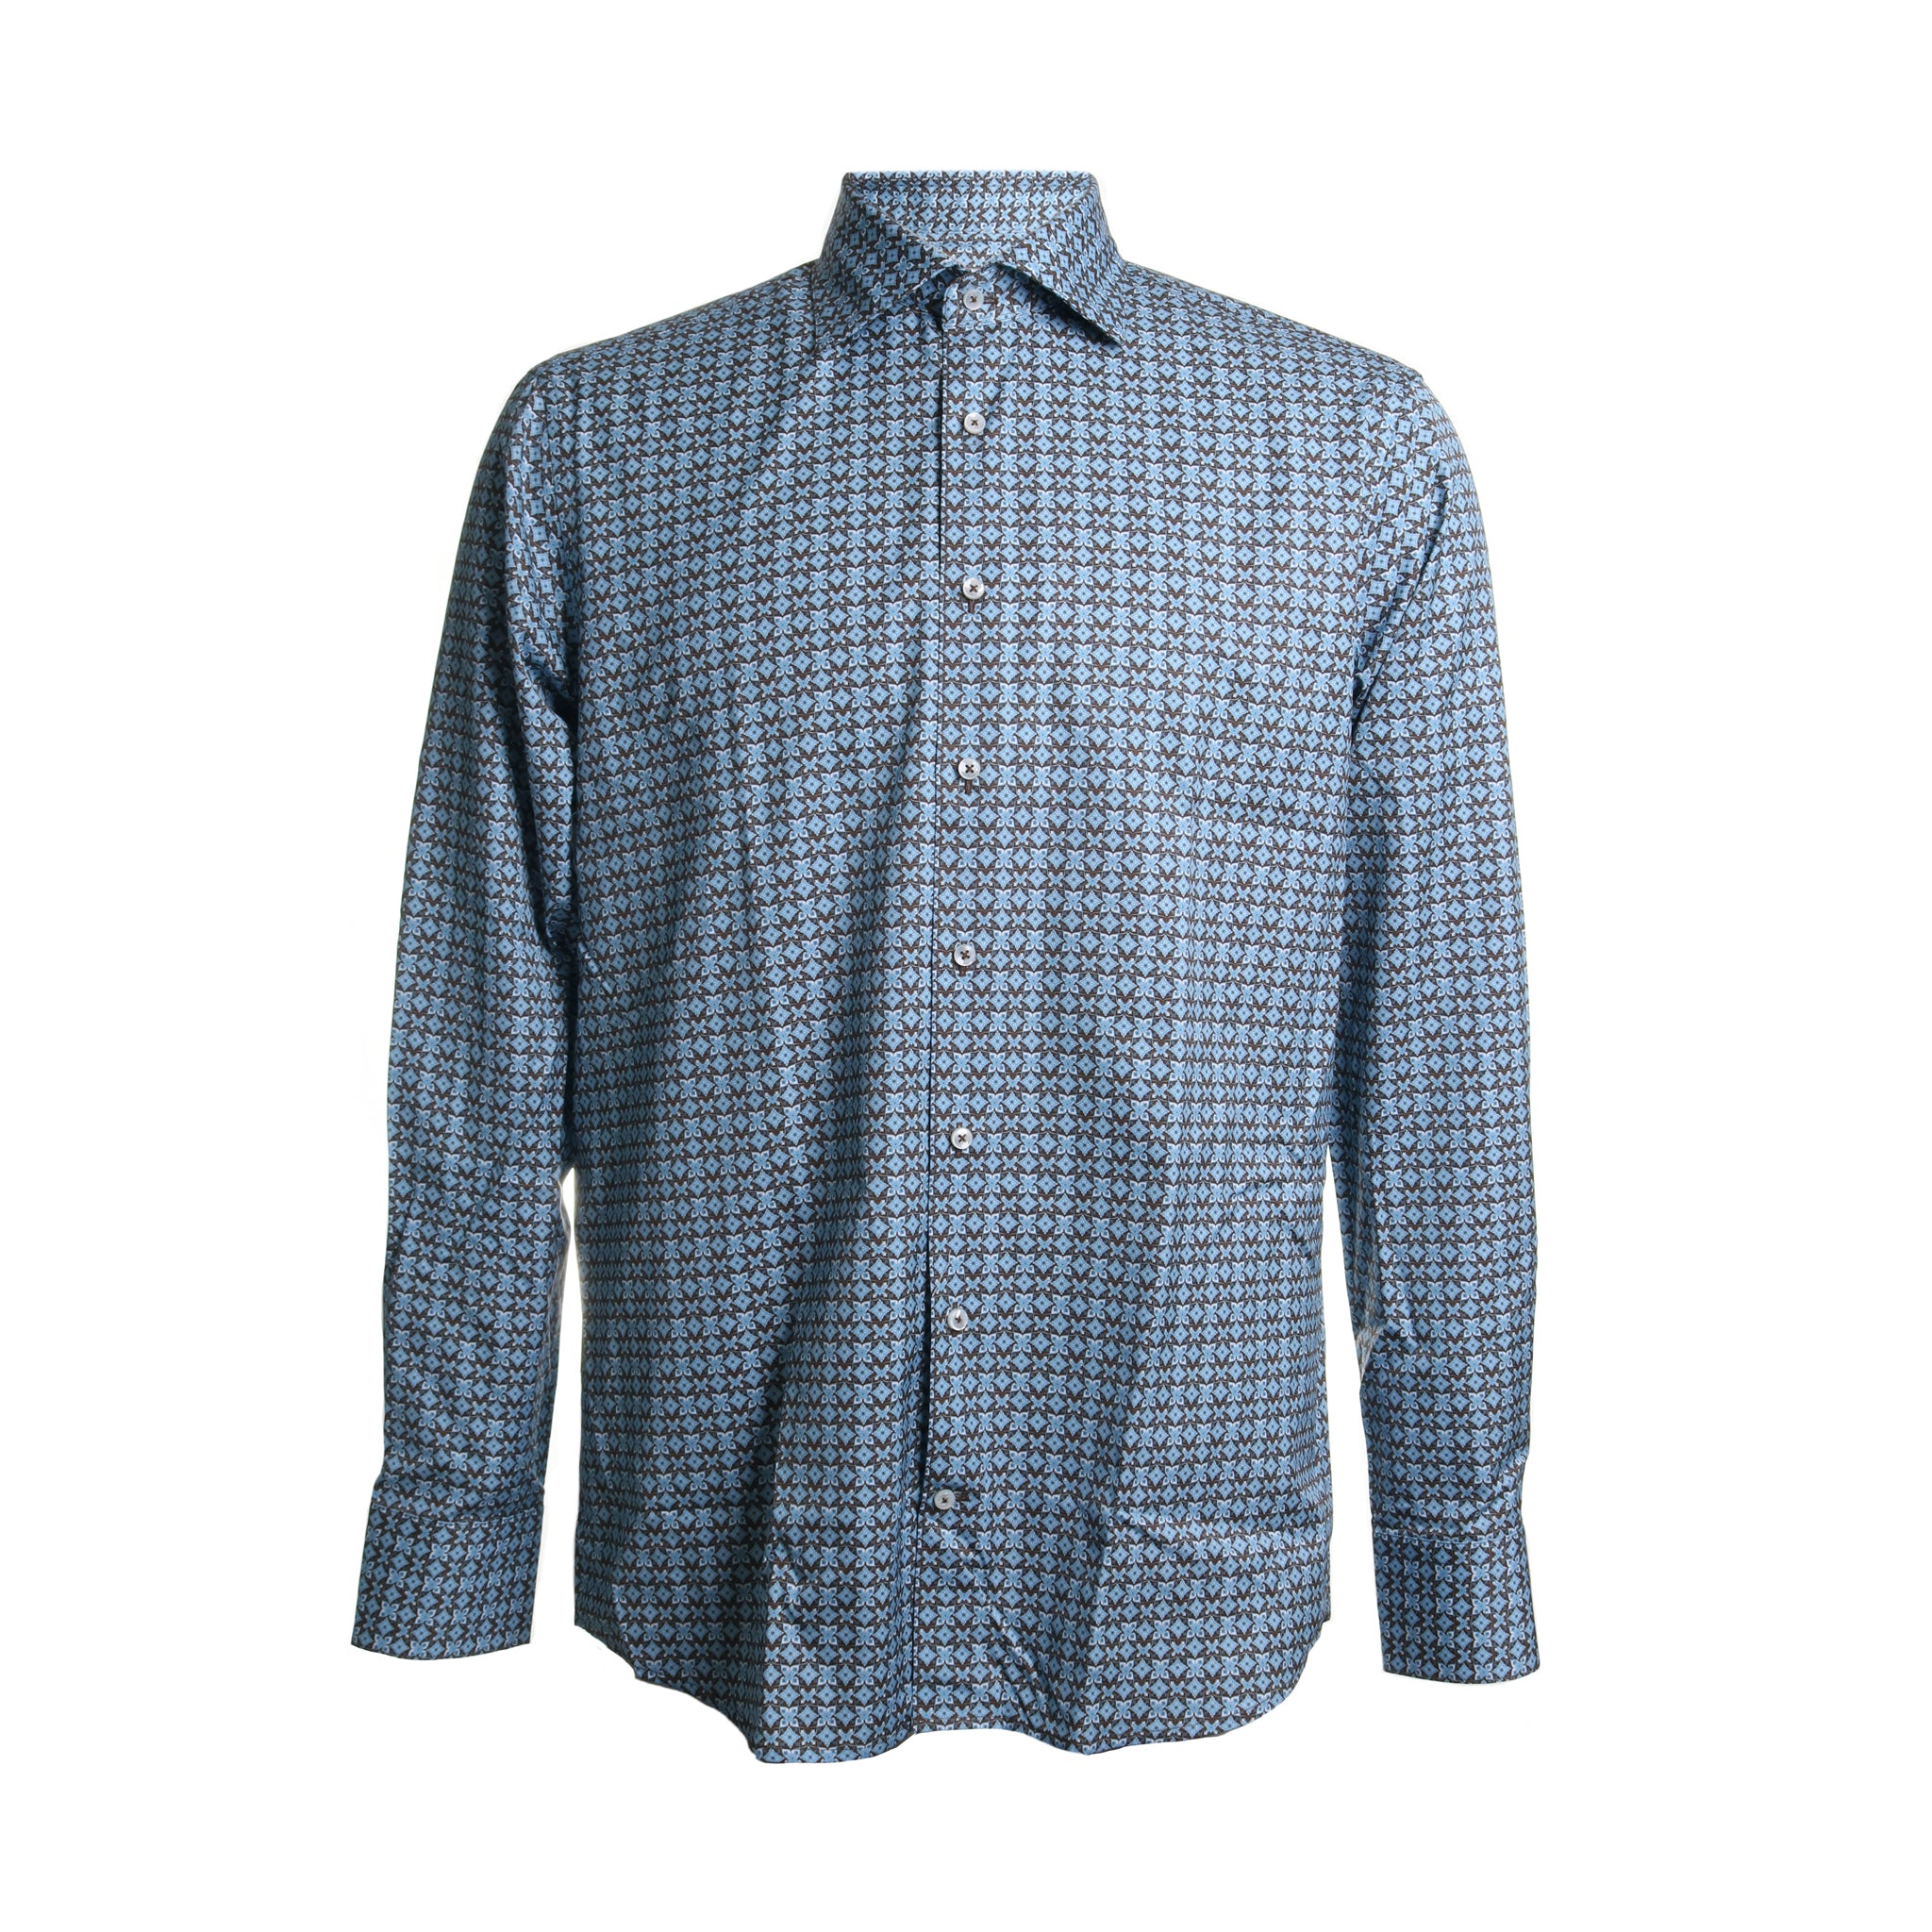 Kaleidoscope Cotton Button Down Dress Shirt